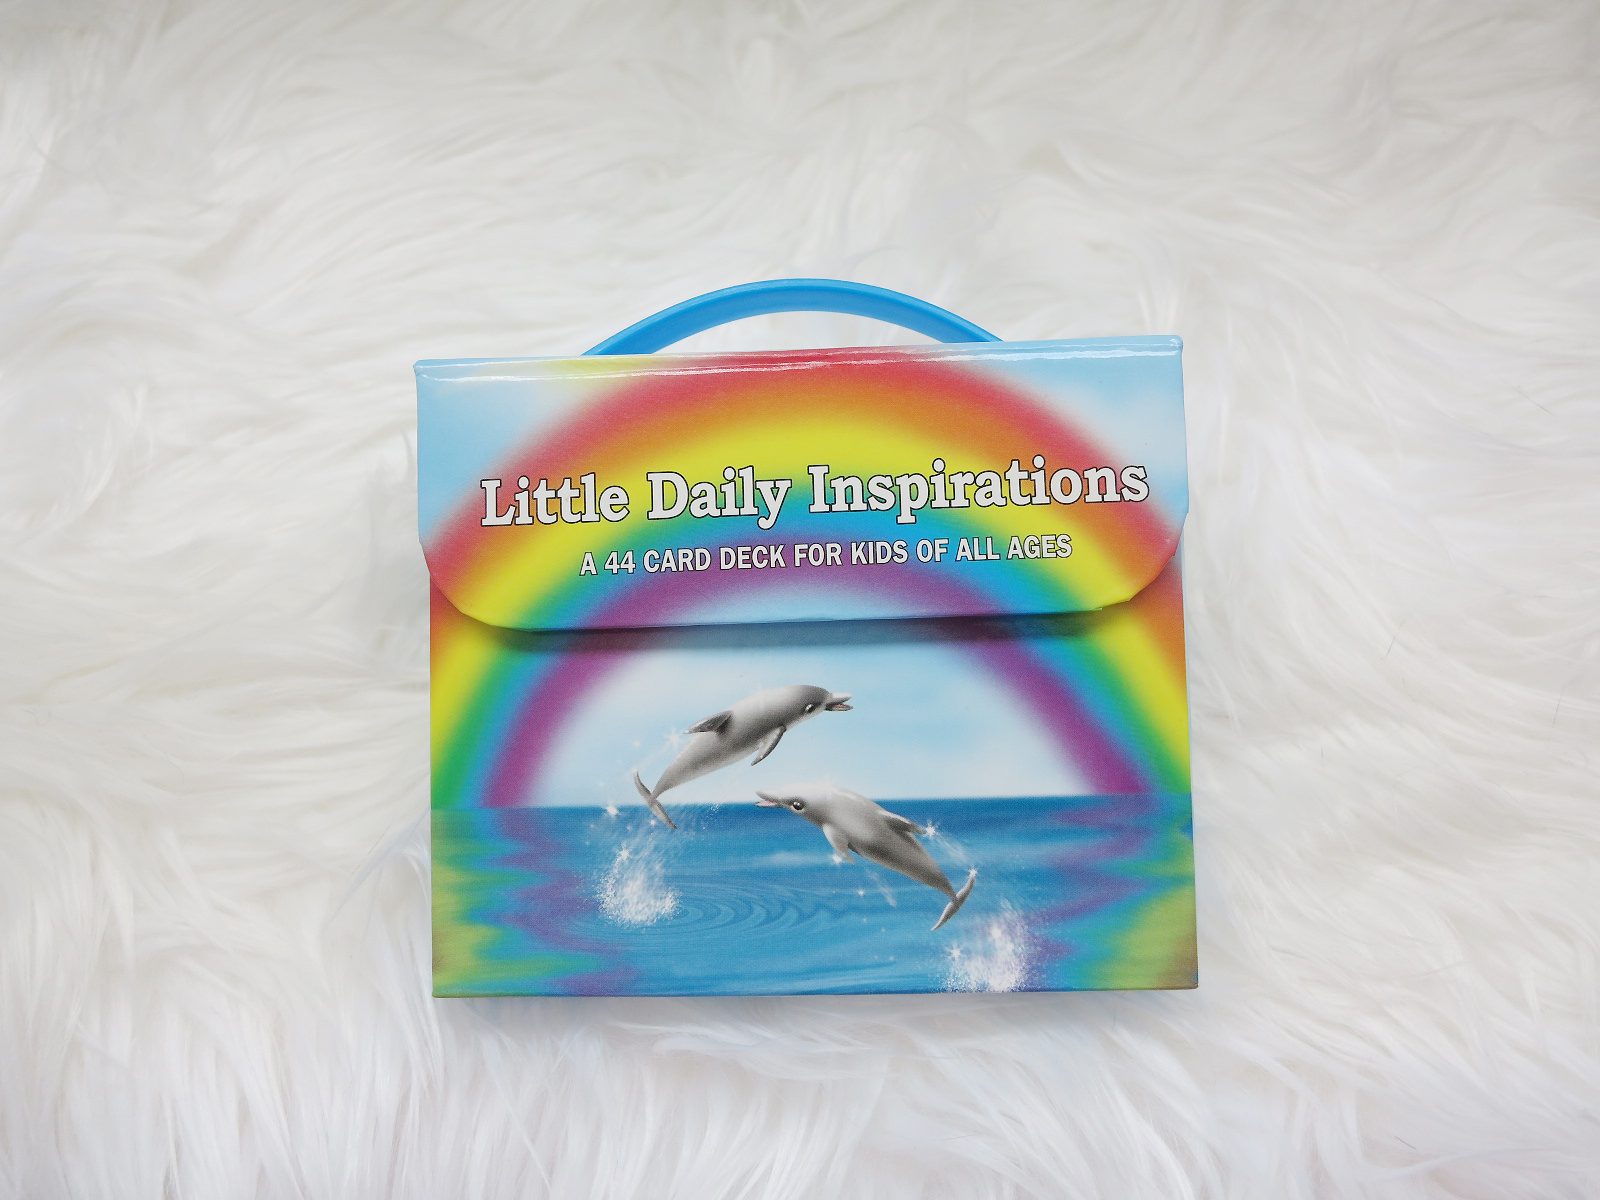 little daily inspirations card deck for kids lynsire cruelty